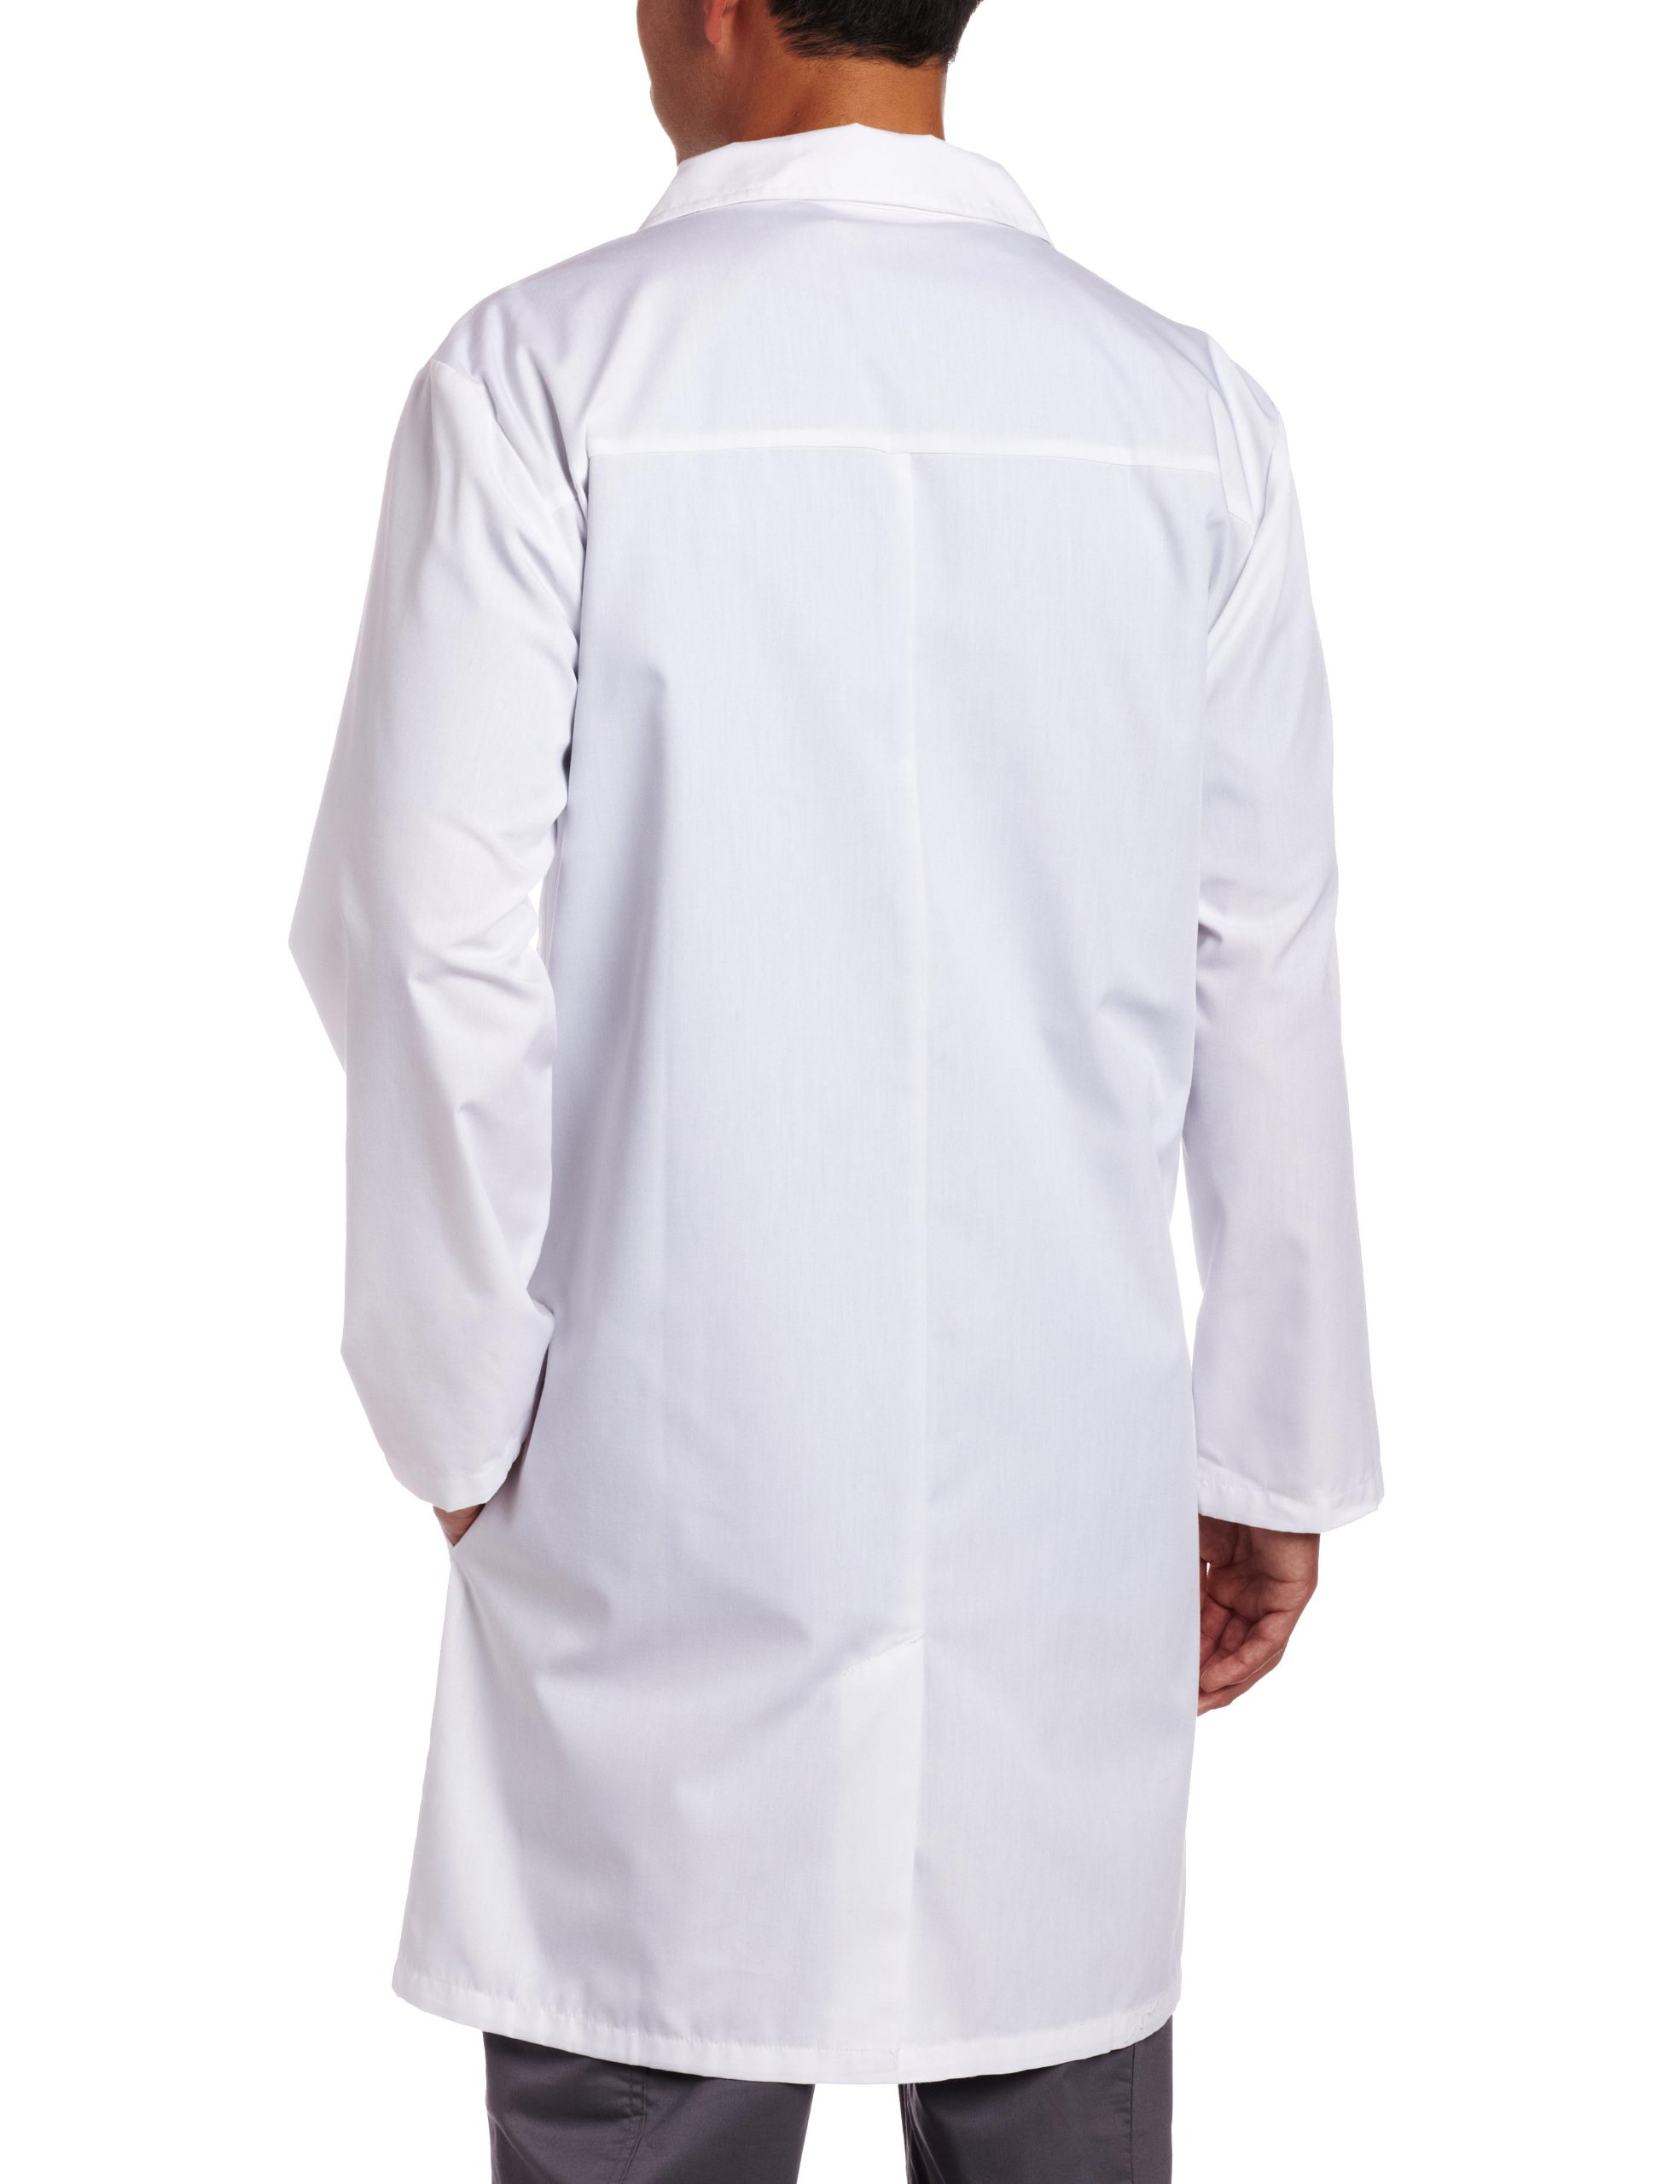 Dickies Big & Tall Unisex 40 Inch Lab Coat,White,5X-Large by Dickies (Image #2)